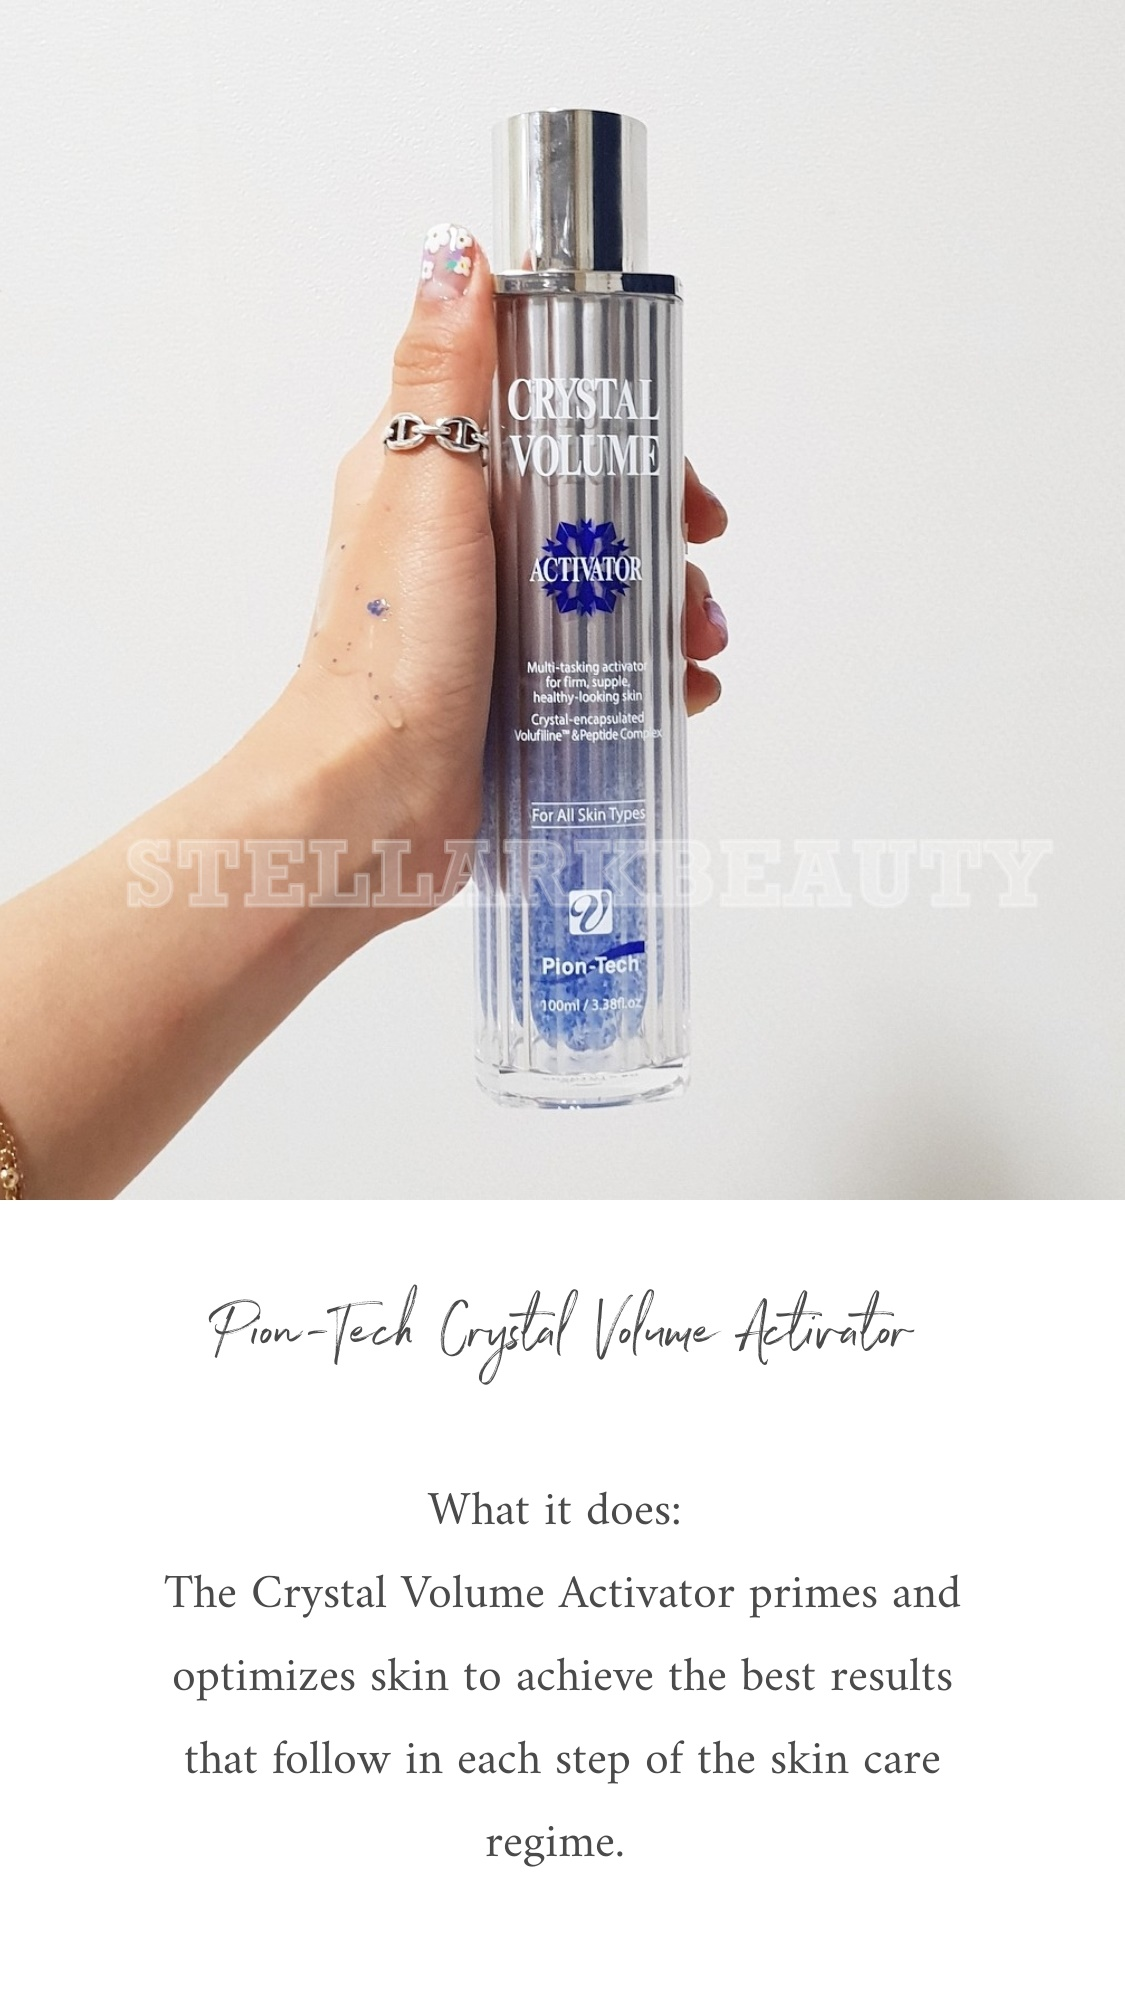 What it does - Crystal Volume Activator